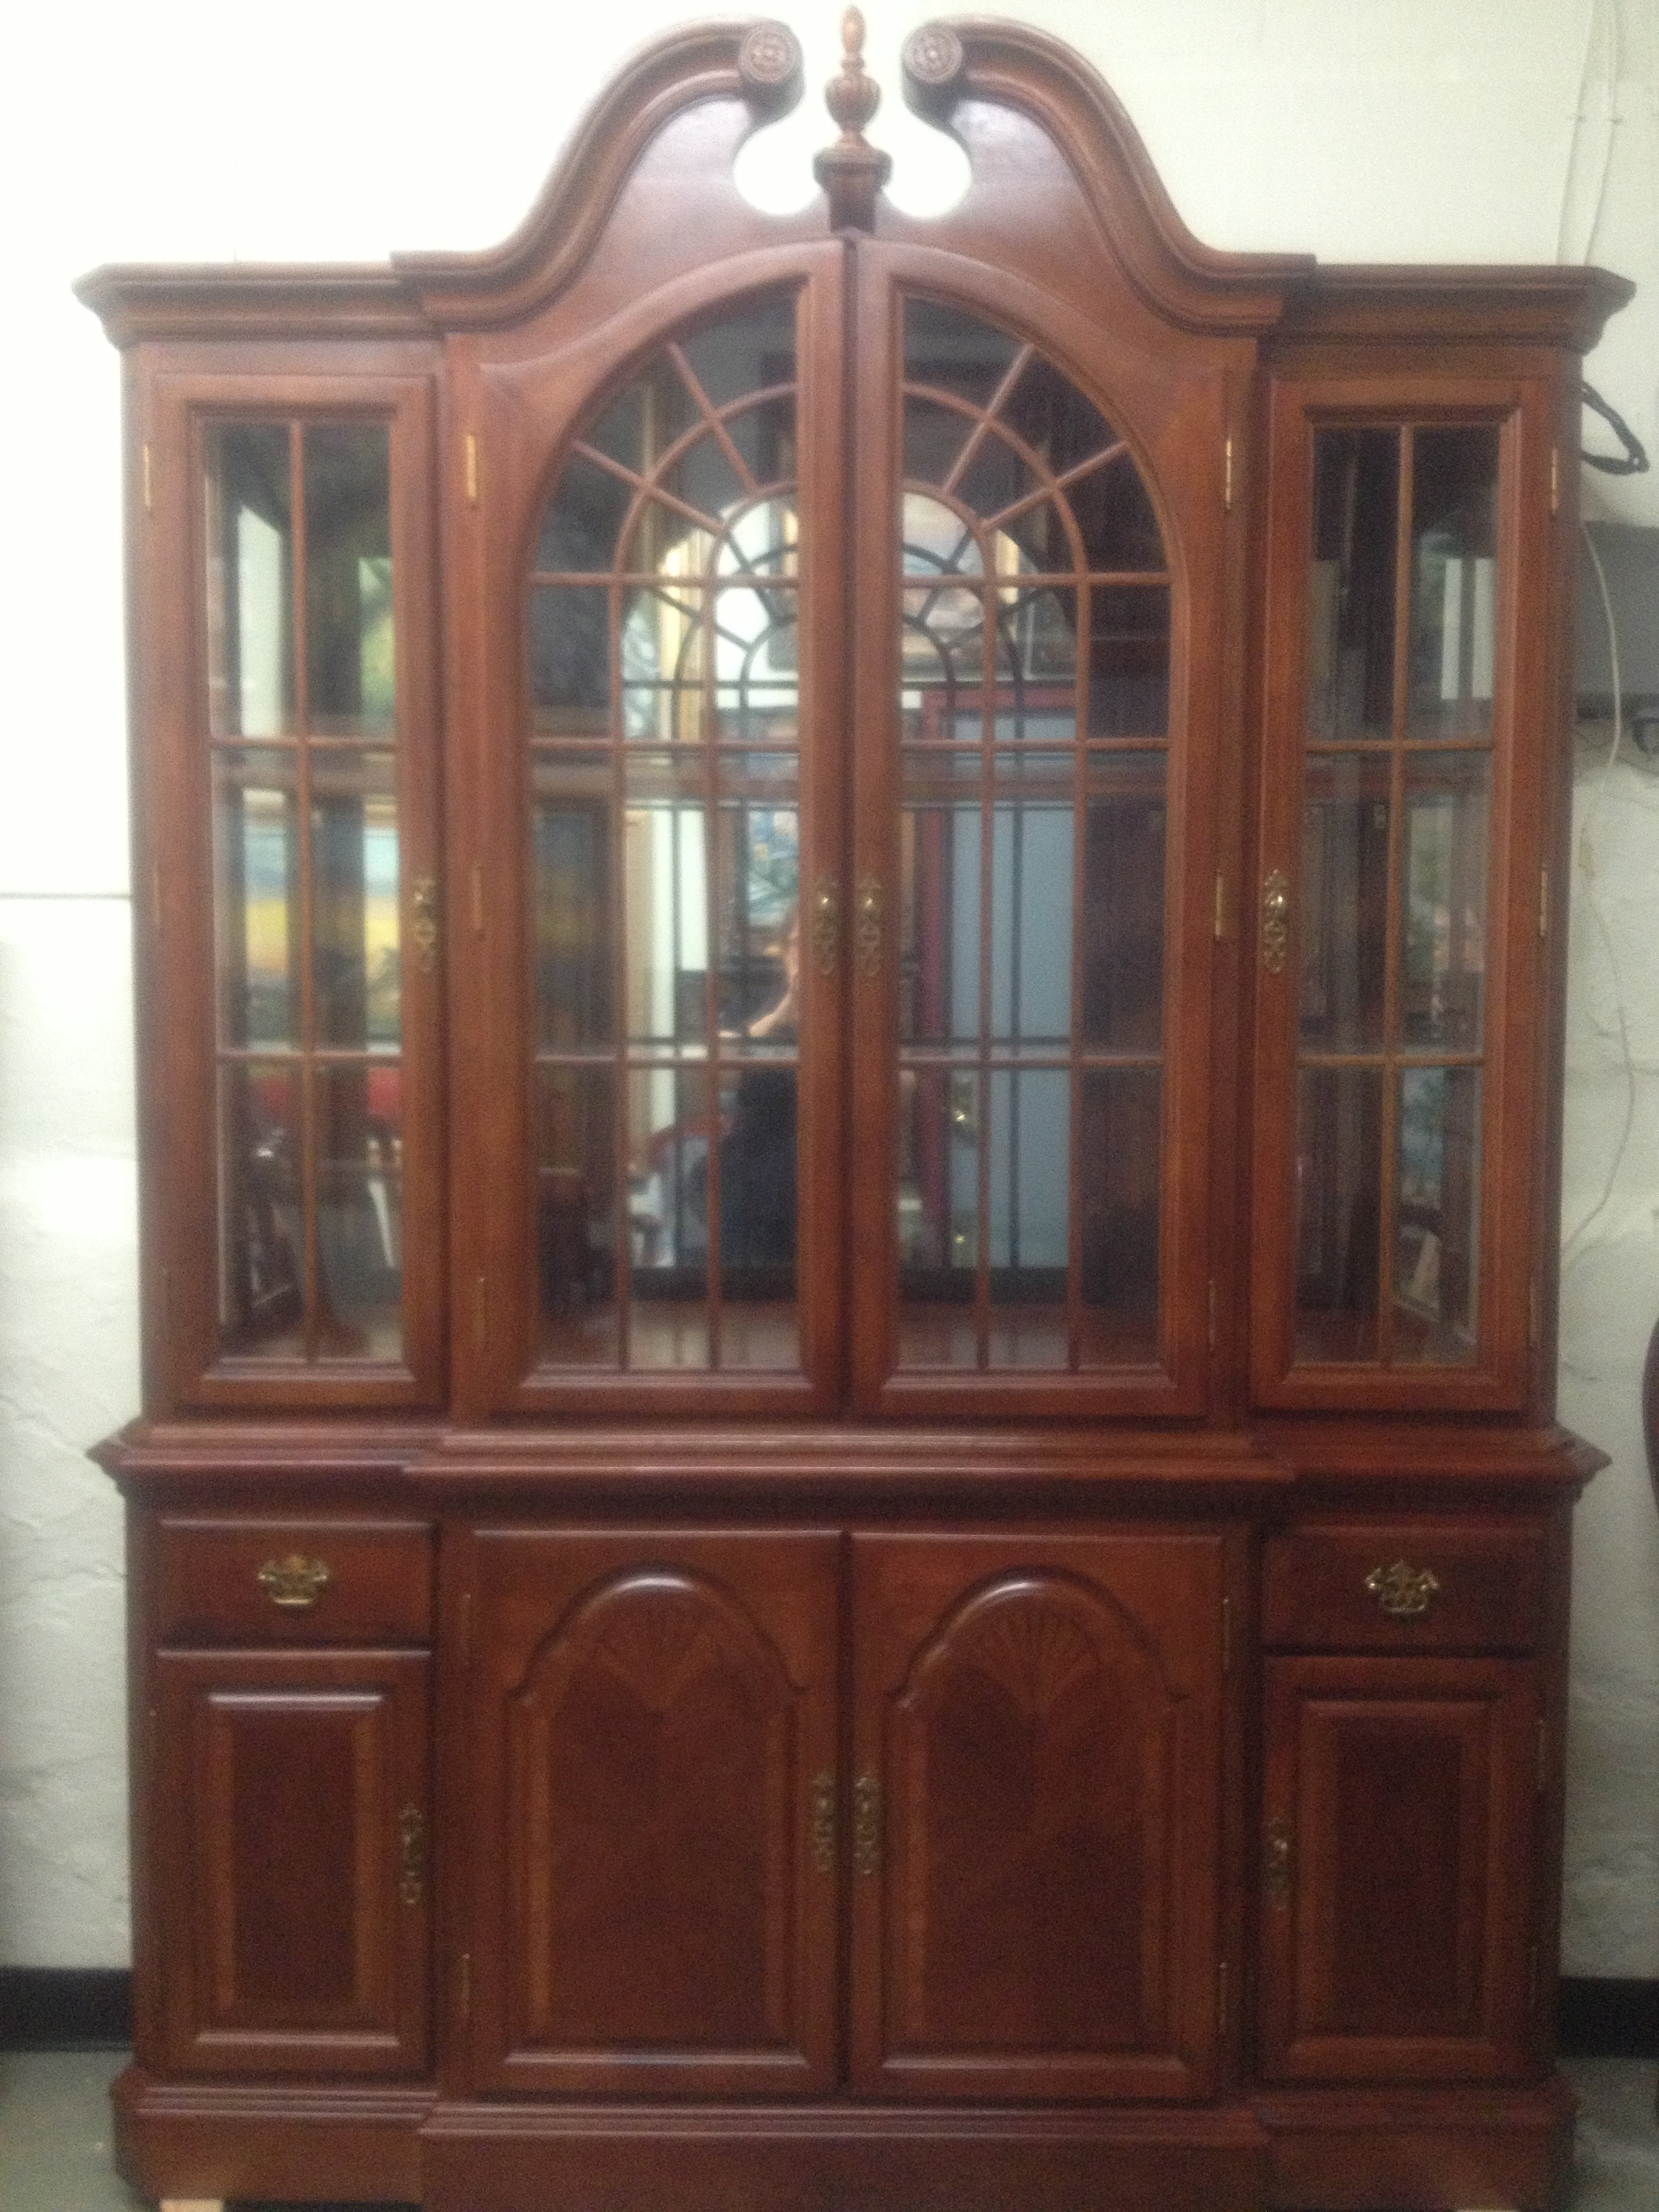 Antiques vintage and collectibles daysi 39 o galleria in west for Chinese kitchen cabinets nj